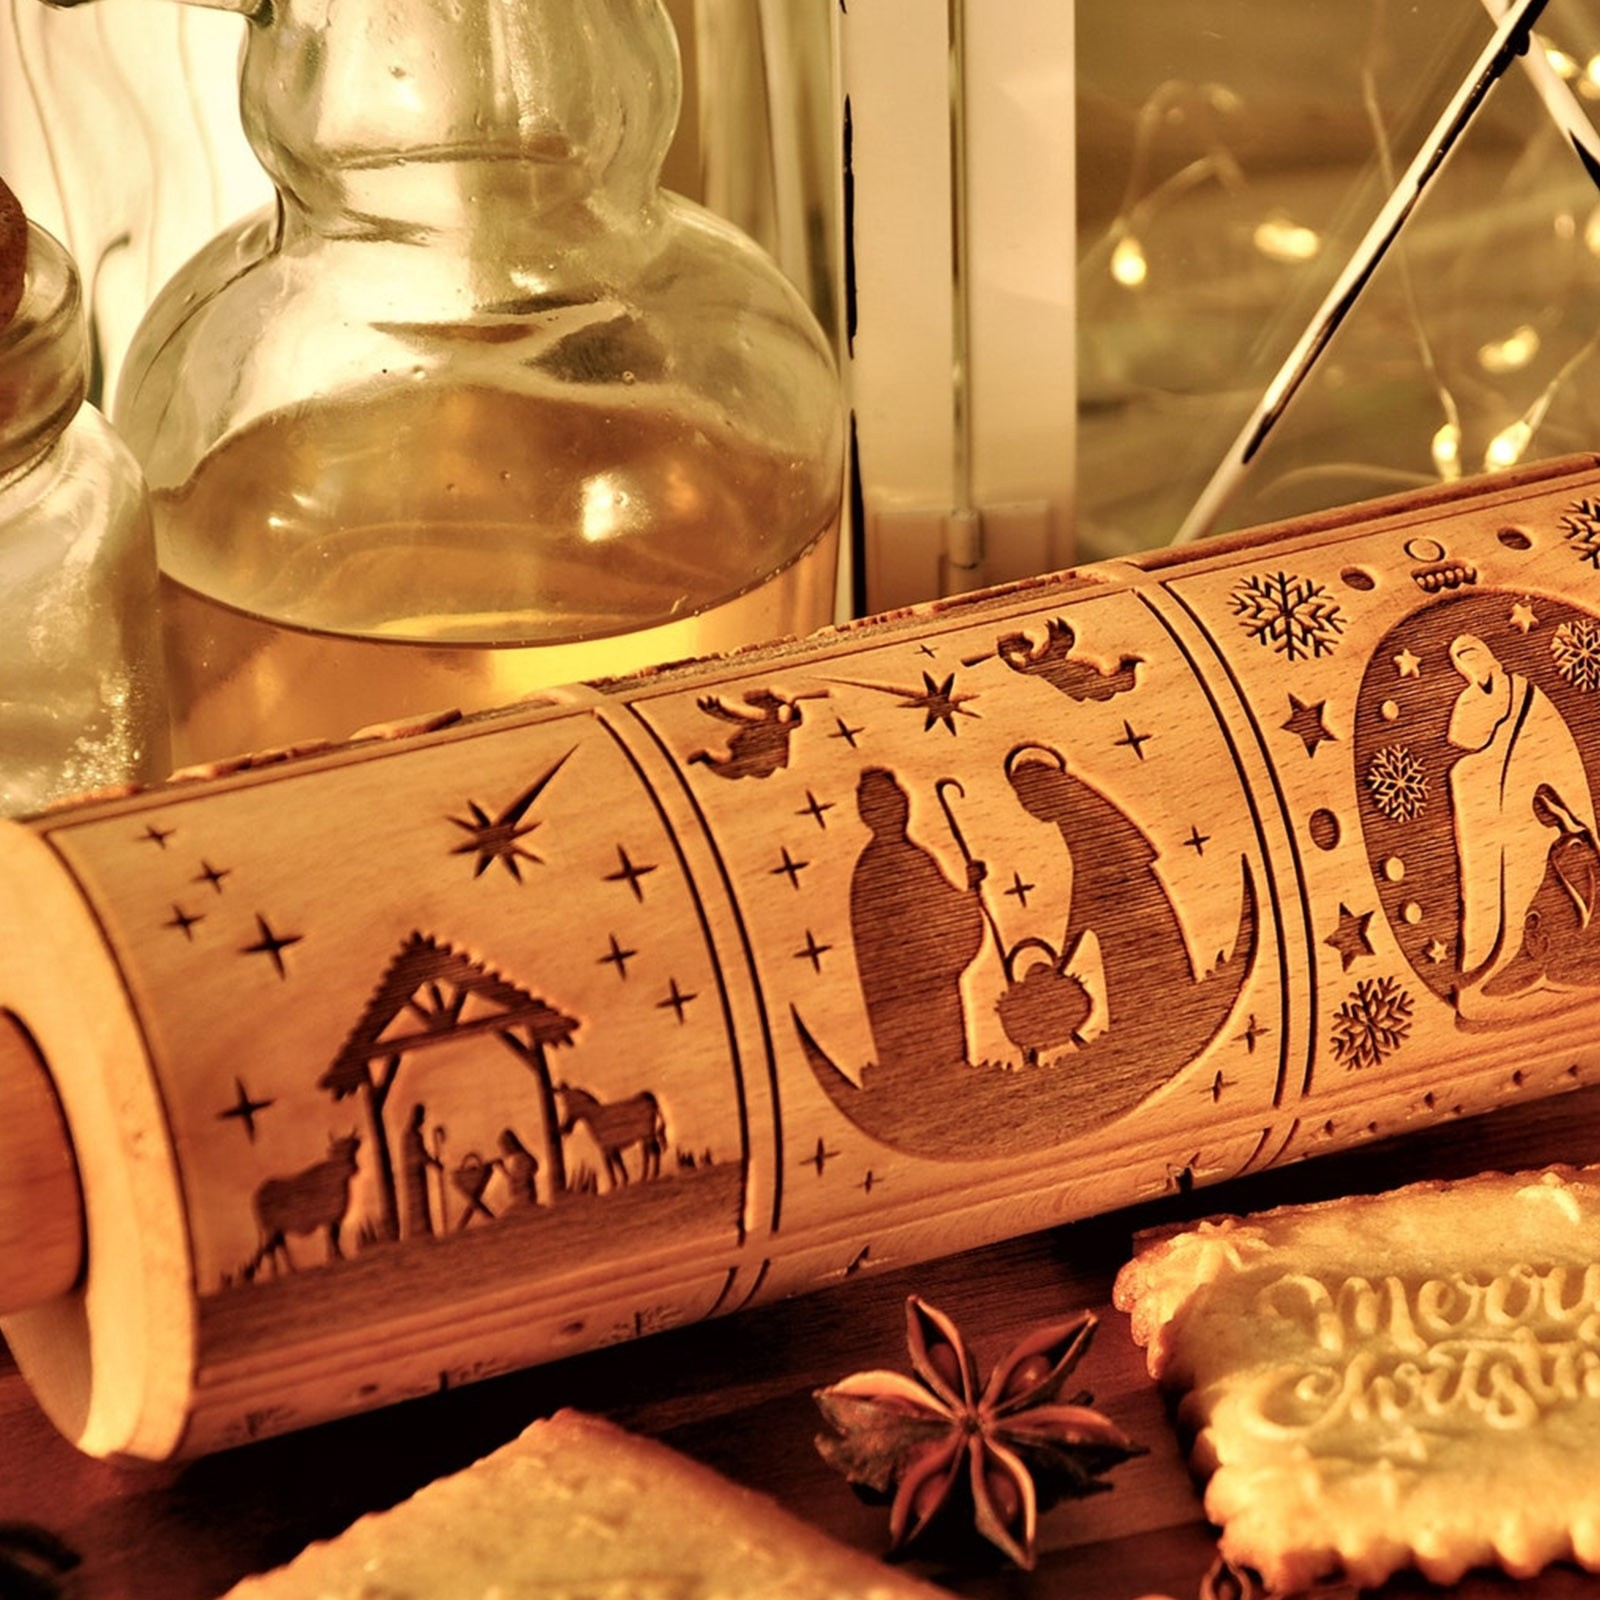 Wood Nativity Engraved Rolling Pin Pastry Tool Embossing Dough Cake Decoration Noodle Cookies Dough Roller Baking Supplies